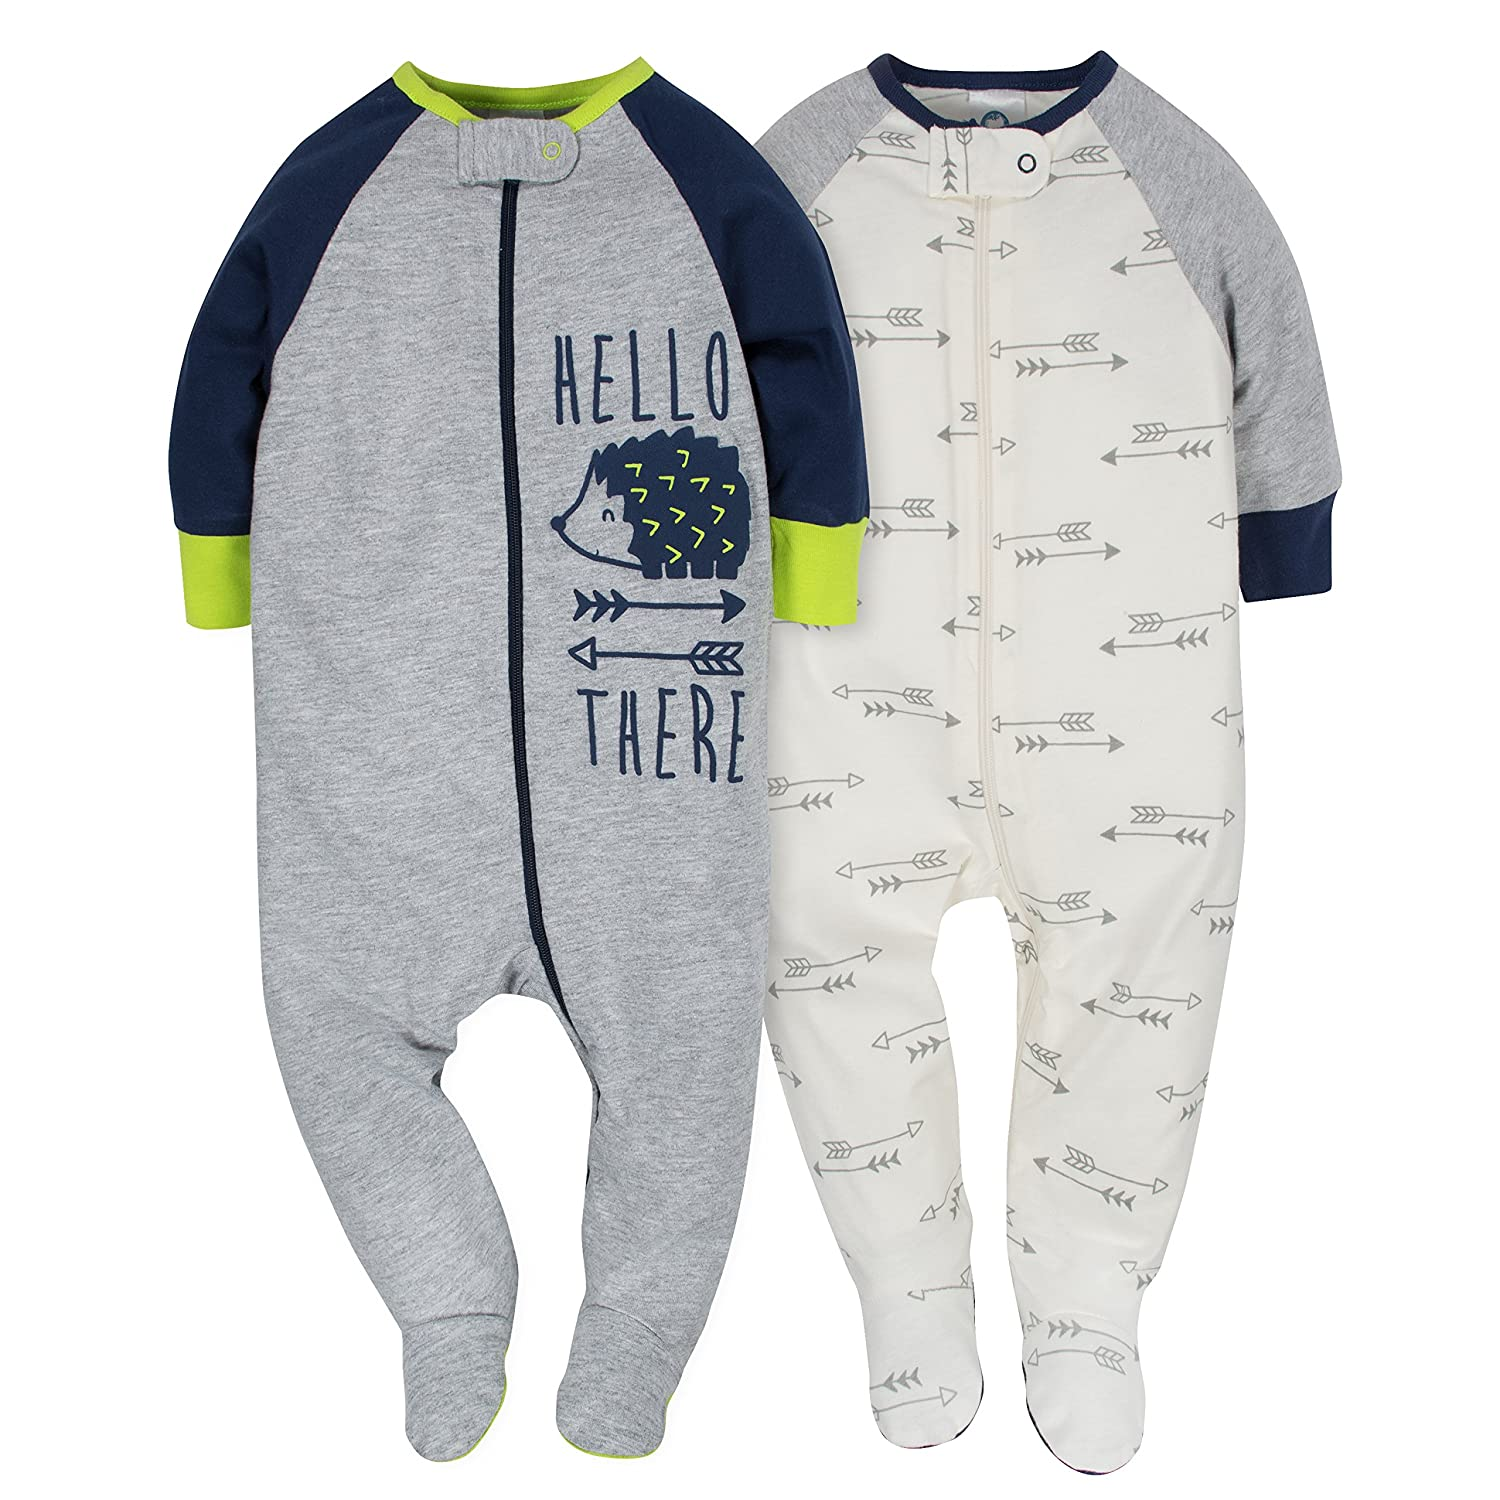 Gerber Baby Boys' 2 Pack Zip Front Sleep 'n Play Gerber Children' s Apparel